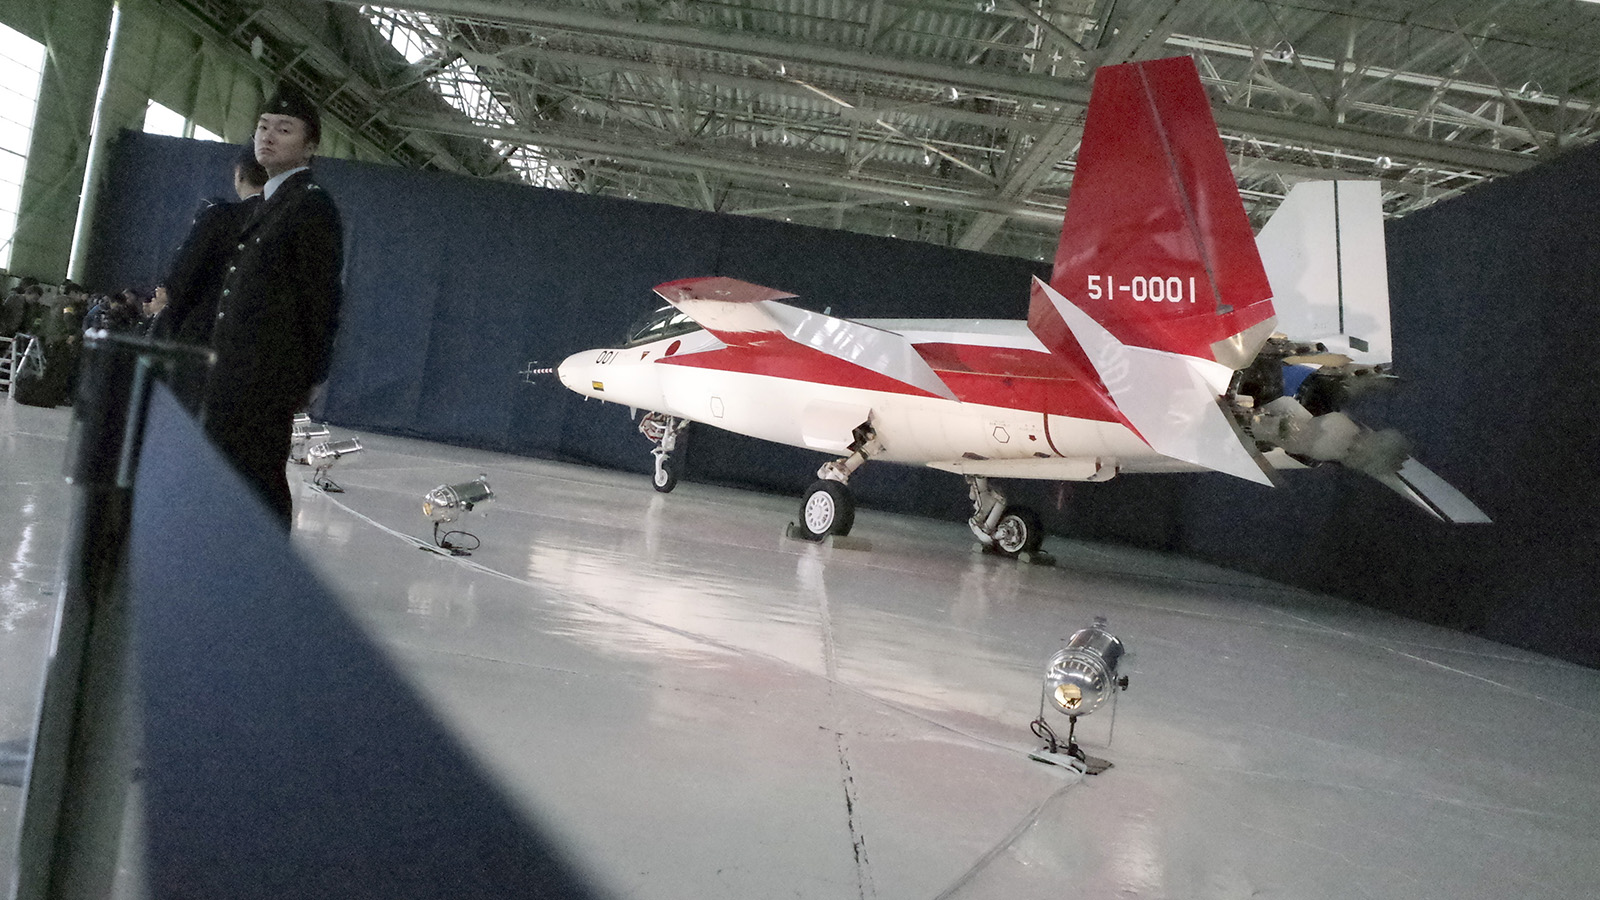 The first domestically-made stealth aircraft, X-2, sits in a hangar at Nagoya Airport in Toyoyama town, central Japan, Thursday, Jan. 28, 2016. The demonstration plane is expected to make its maiden flight sometime after mid-February. A Defense Ministry official said the technology will give Japan the option of developing its own stealth fighter jets in the future. (AP Photo/Emily Wang)